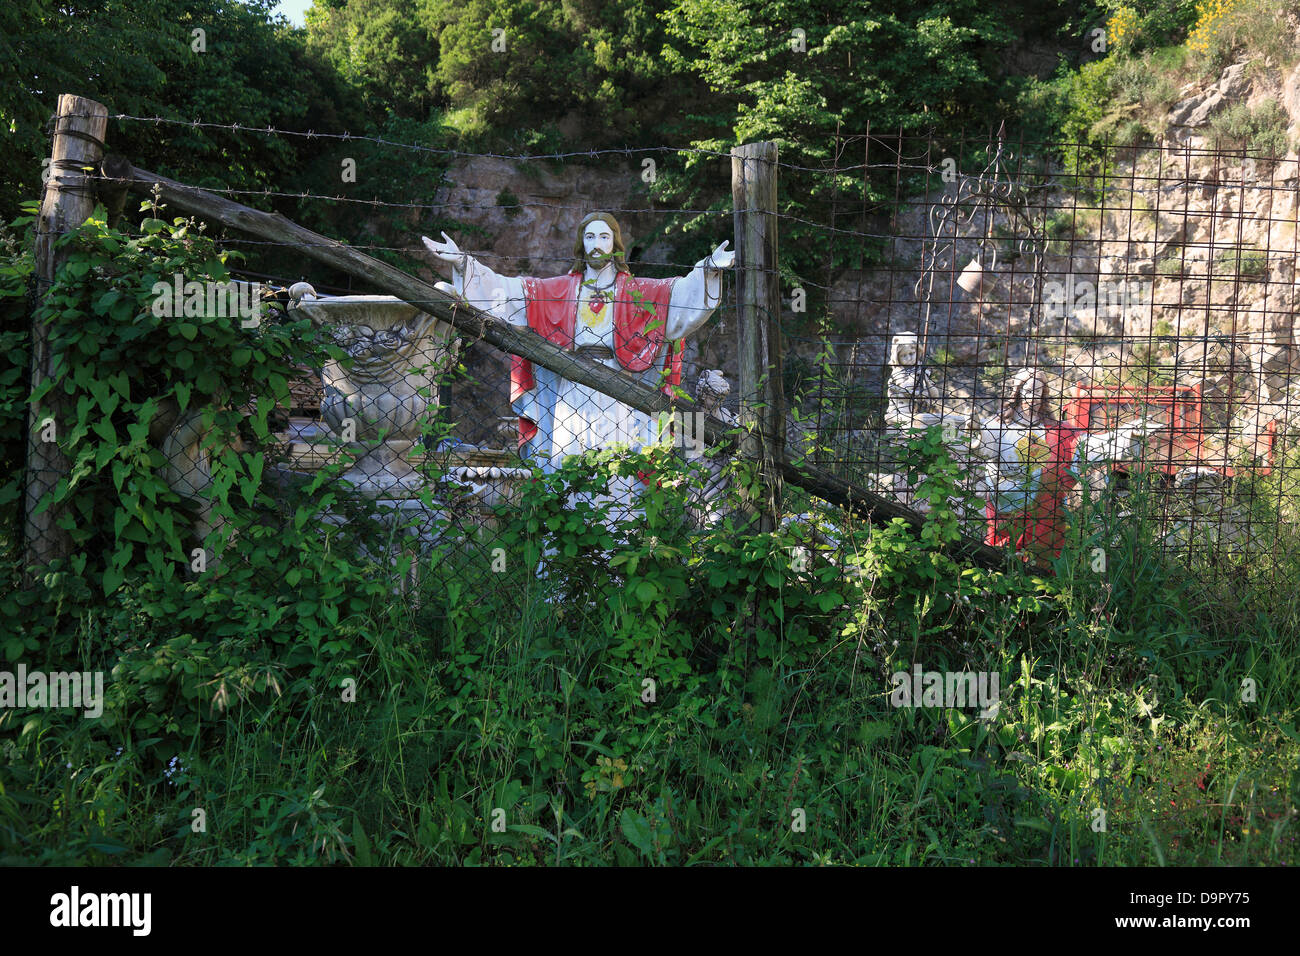 Saints on the road, behind a fence, on the peninsula of Sorrento, Campania, Italy Stock Photo